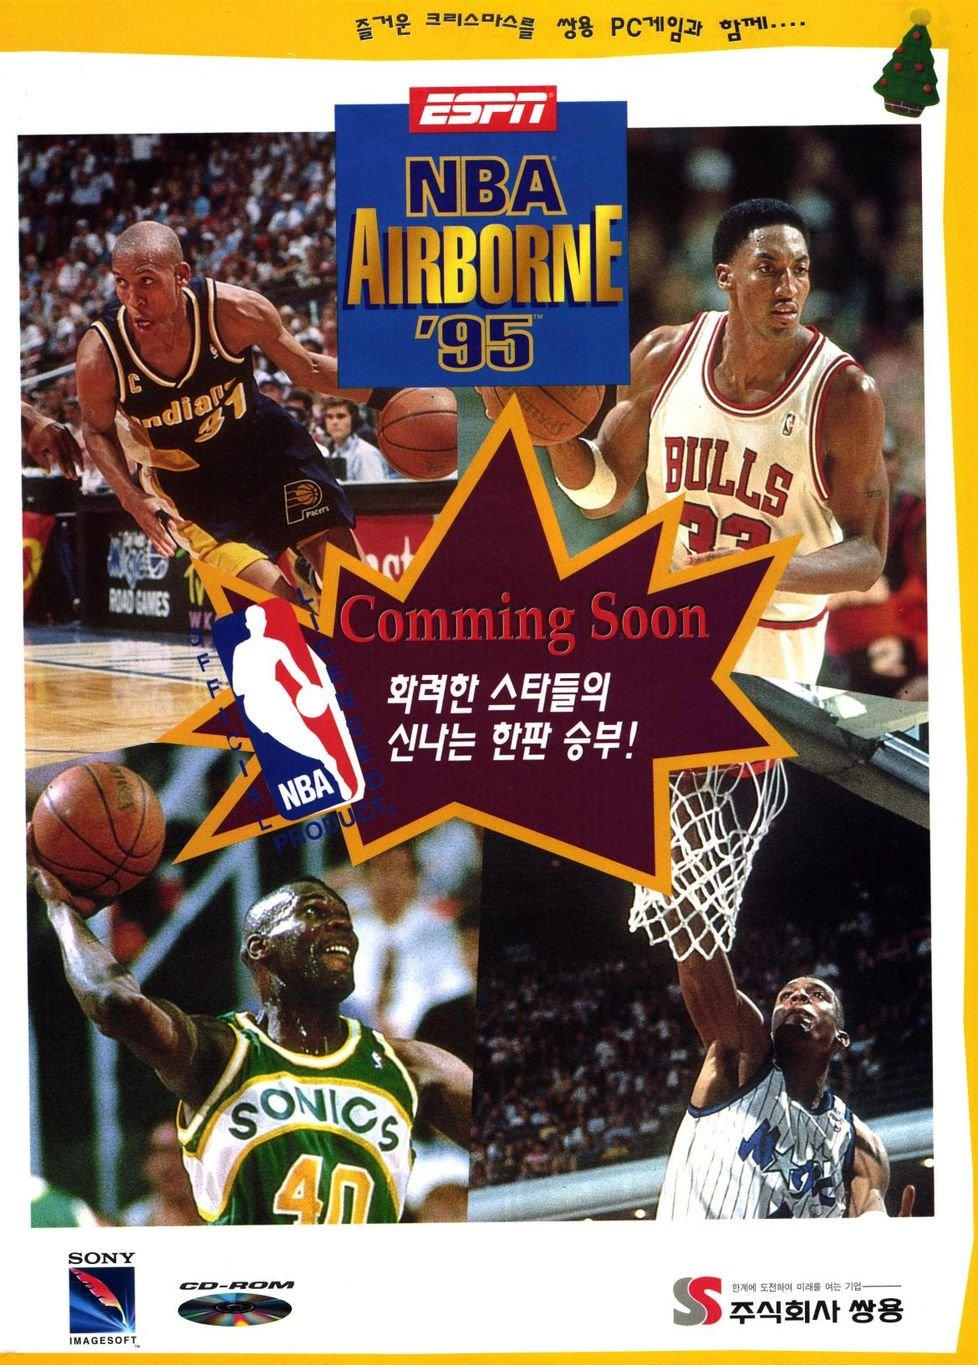 ESPN NBA Airborne '95 (Korea) - PC - Retromags Community